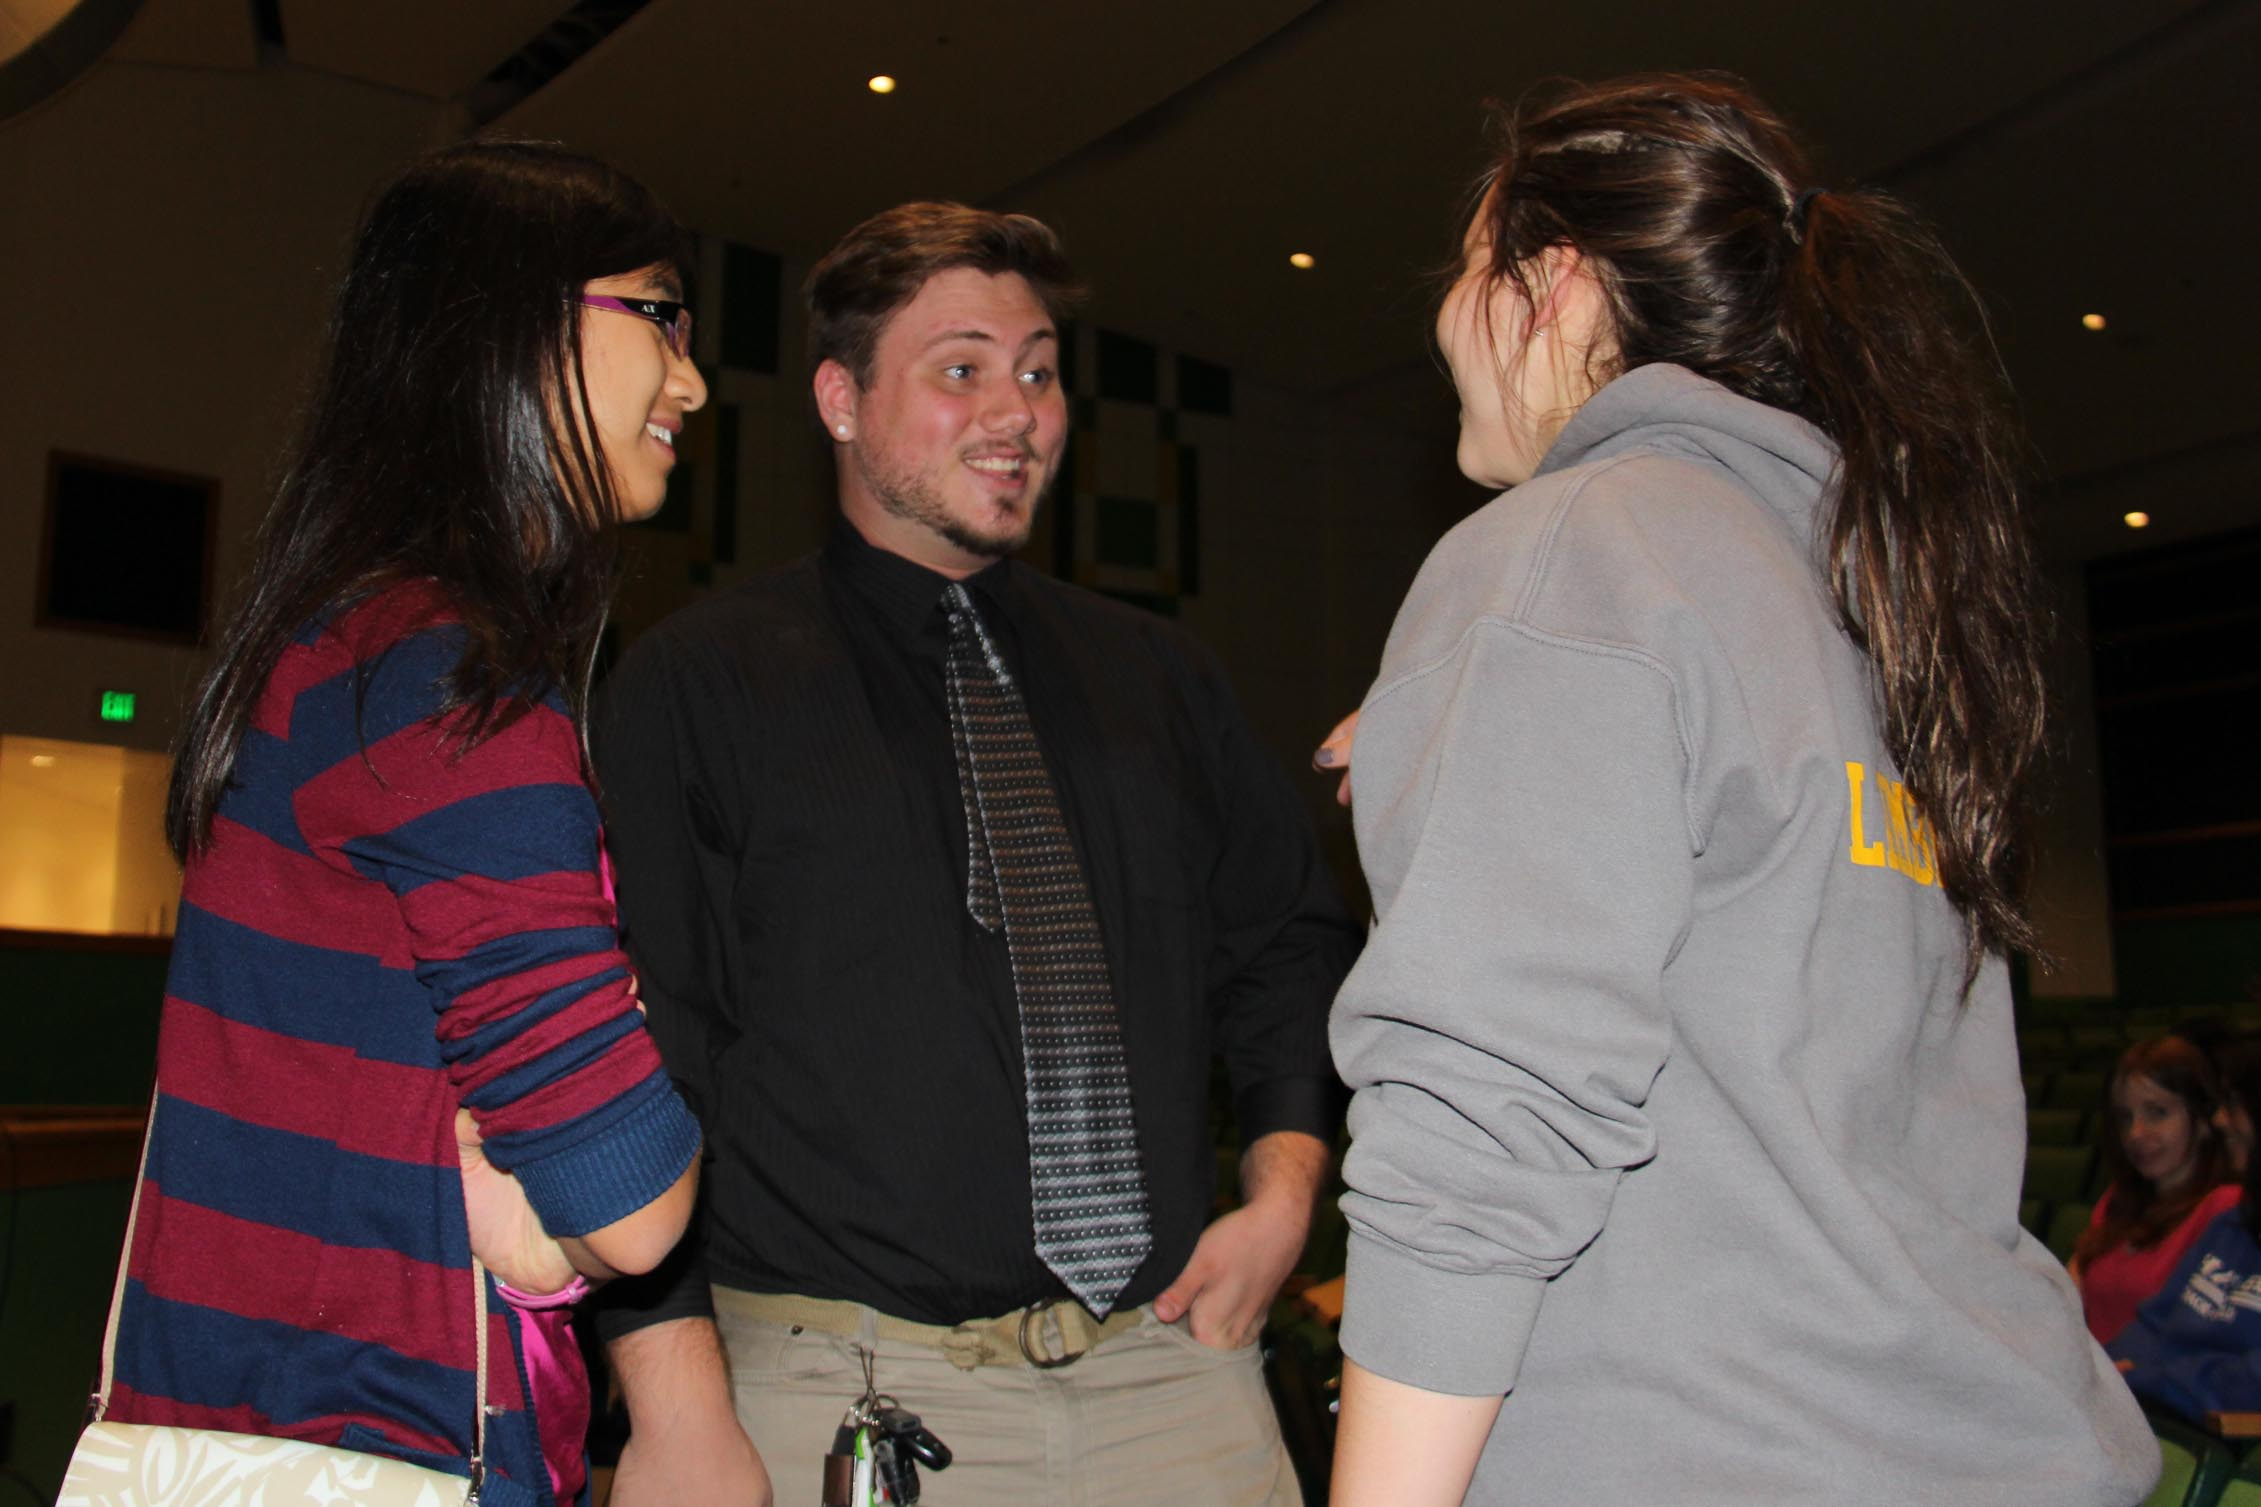 MSA graduates Anna Phan and Ryan Kilduff talk to MSA students.